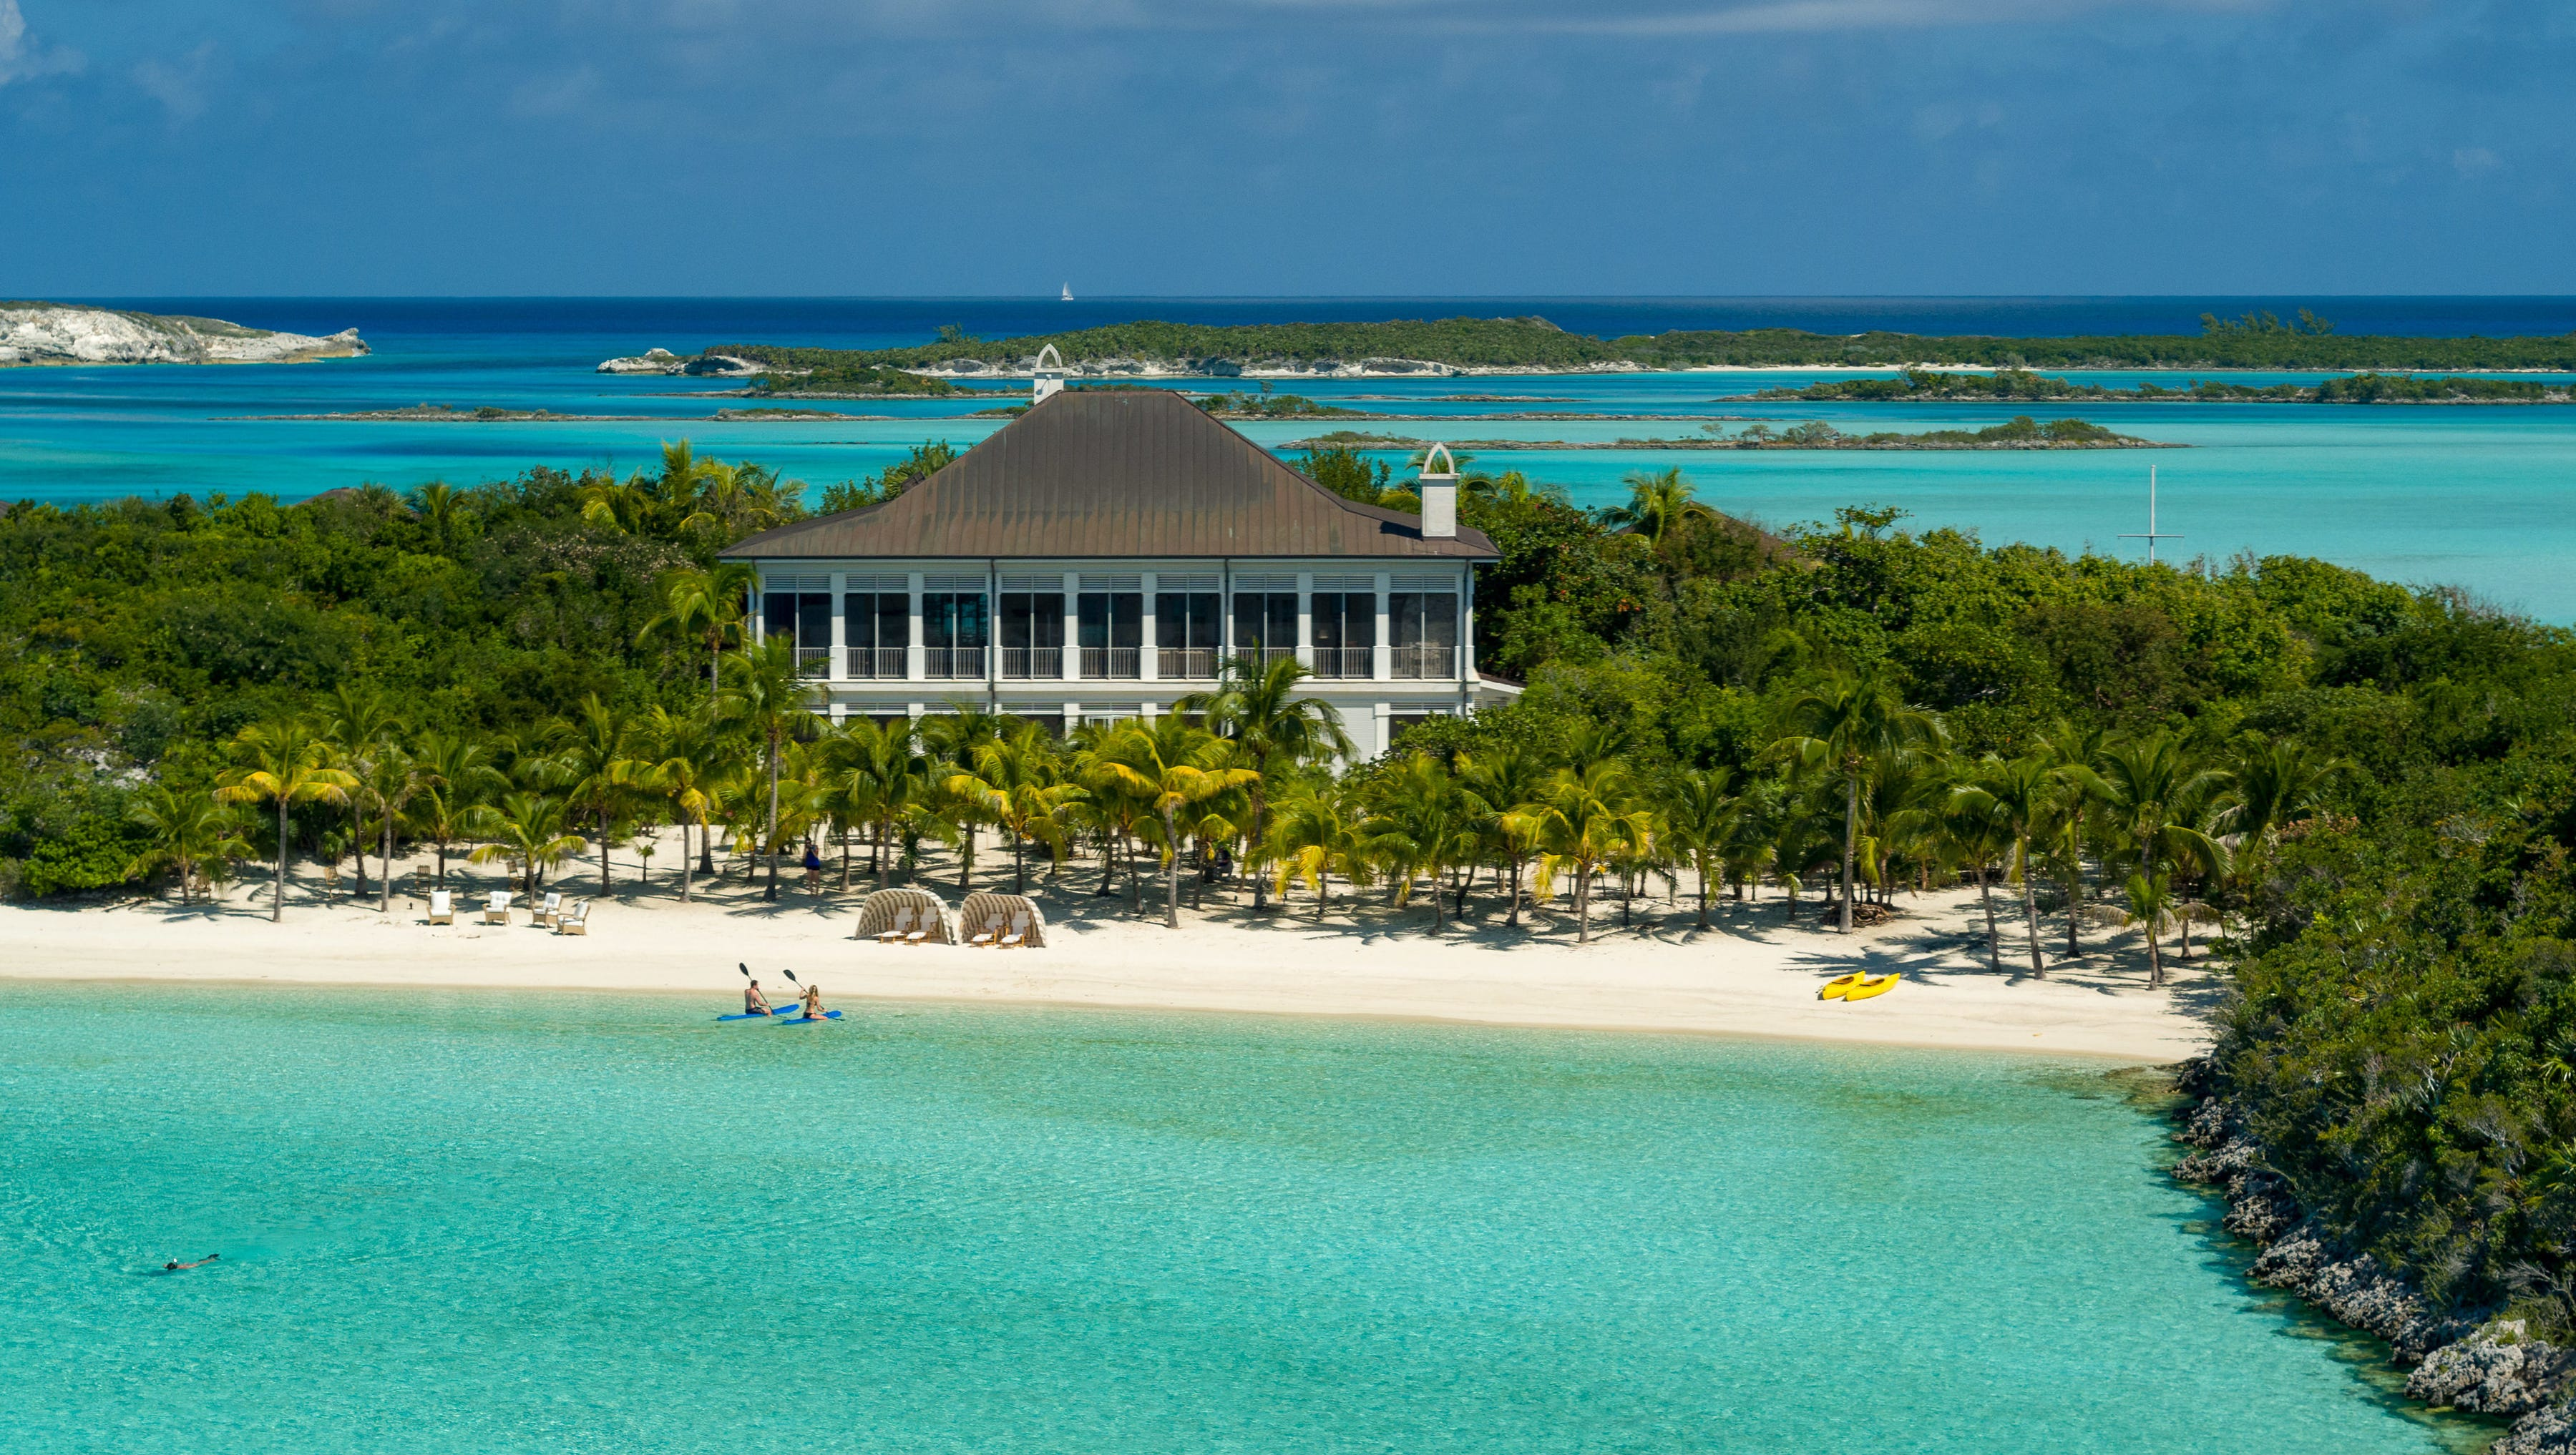 Dream Homes For Sale In The Bahamas